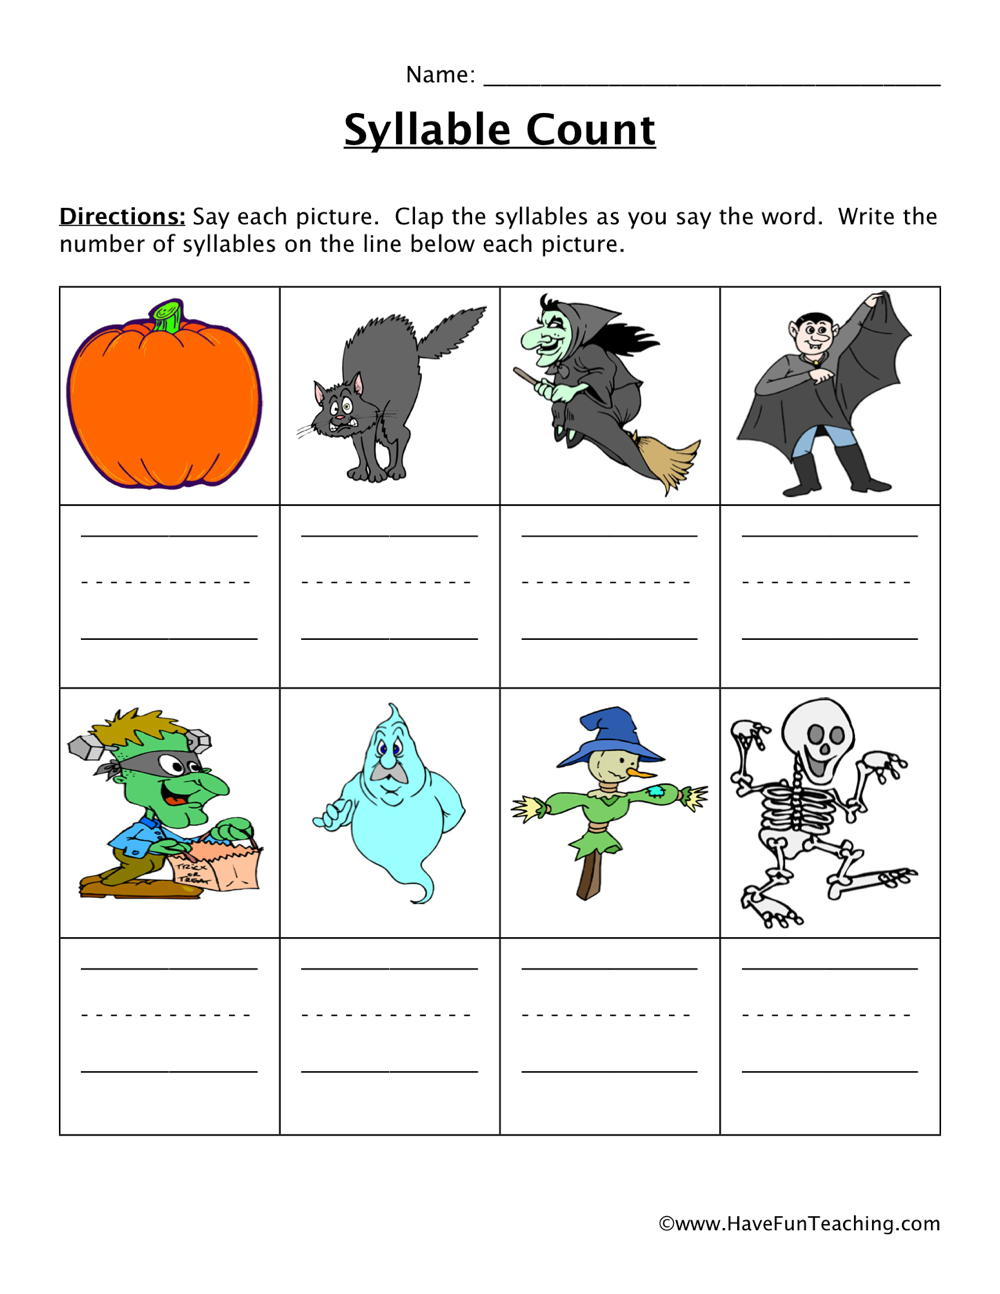 syllable-worksheet-1